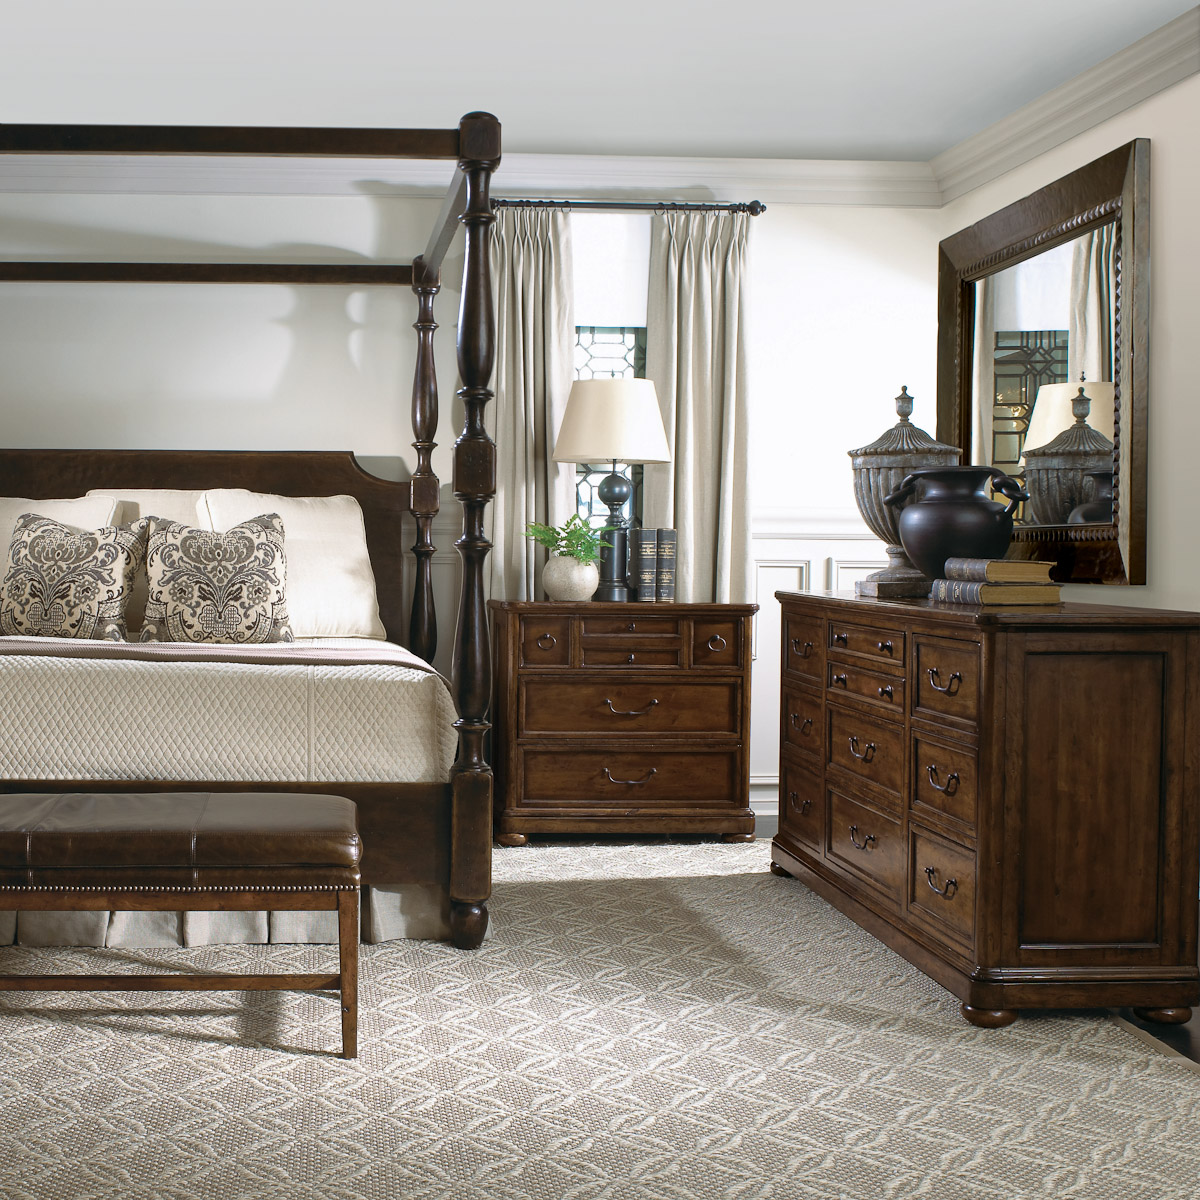 Bedroom Couch: Bedroom Furniture